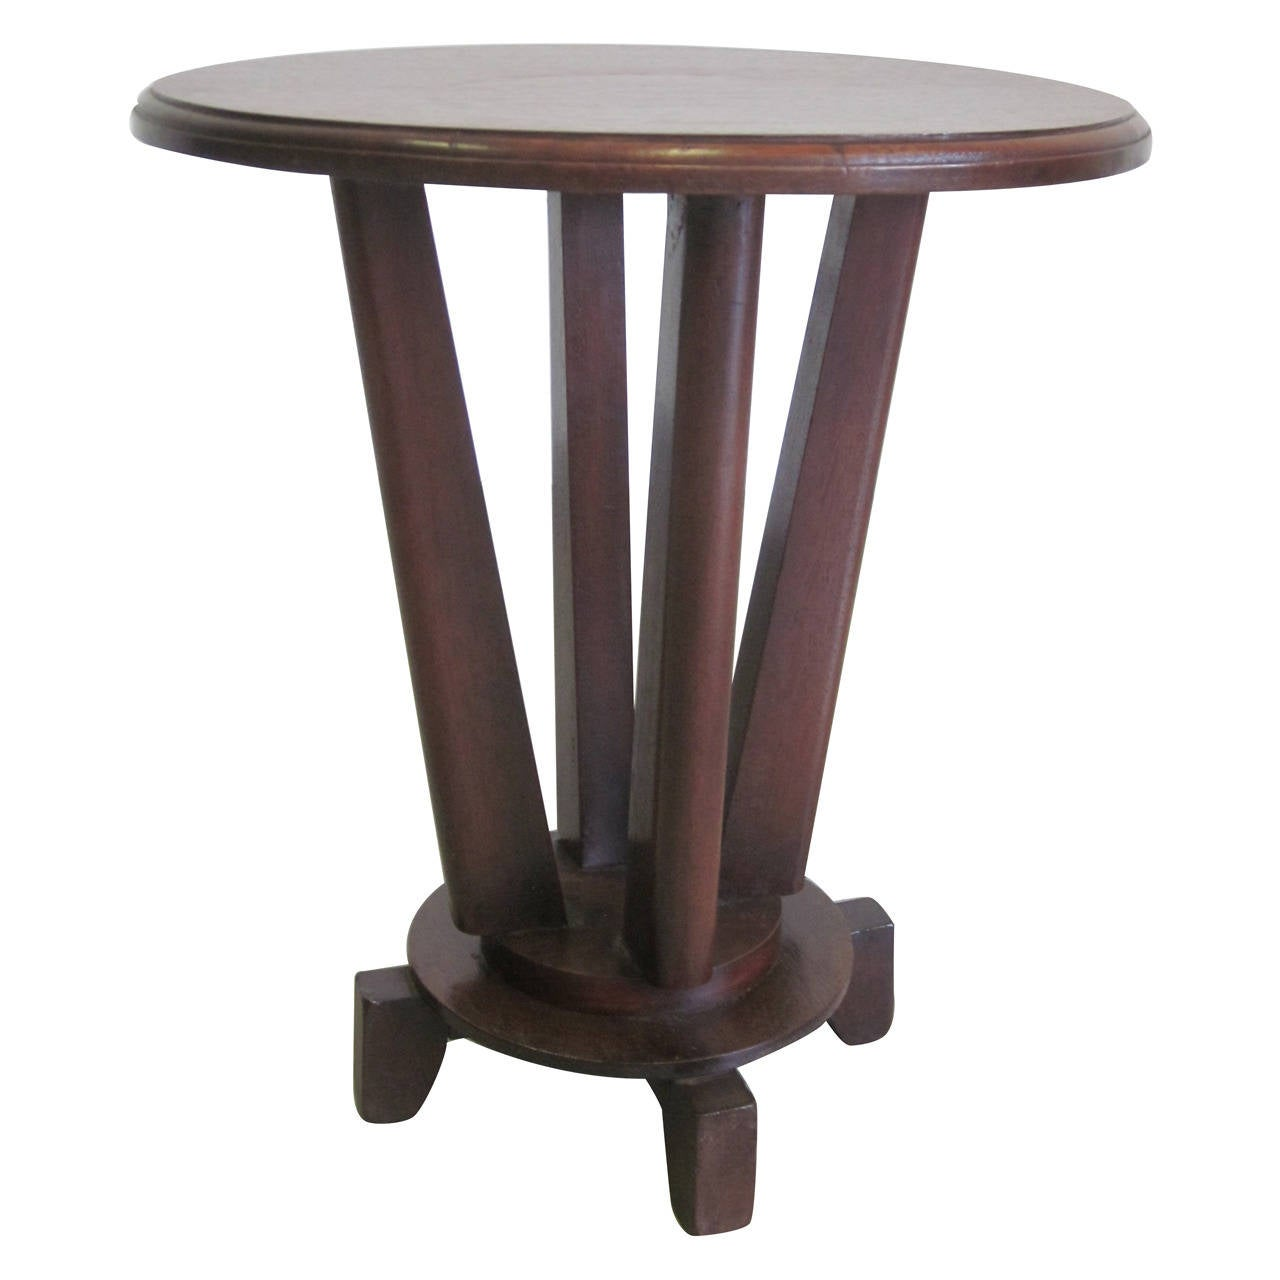 french colonial gueridon or side table for sale at 1stdibs. Black Bedroom Furniture Sets. Home Design Ideas